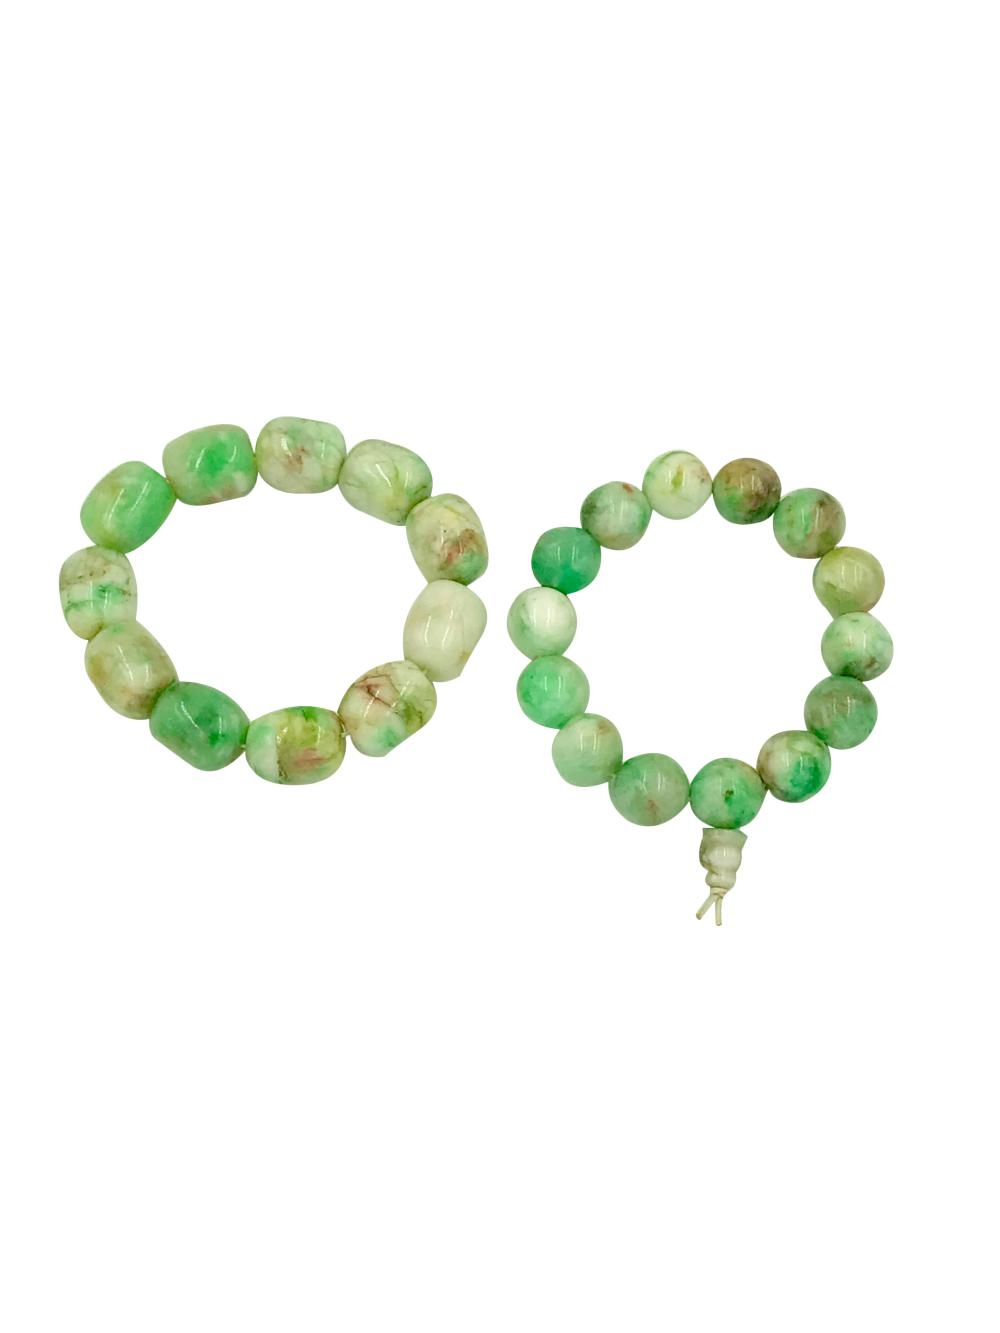 Set of Chinese Prayer Beads, Green Faceted Chrysoprase, Marble-Colored